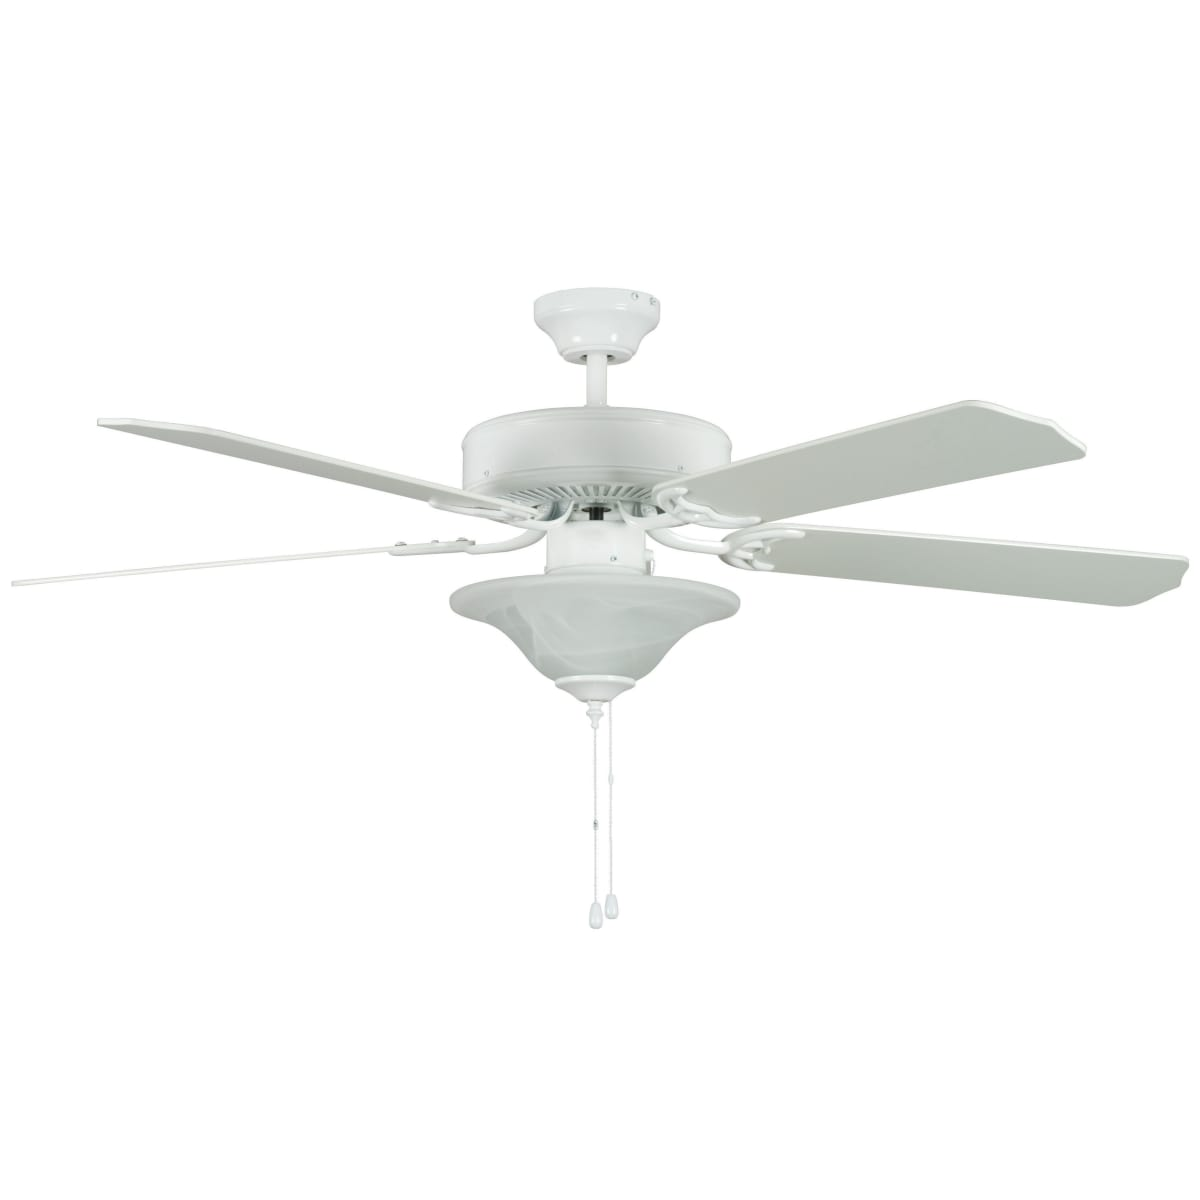 Concord 52hes5esn Es Satin Nickel Heritage Square 52 5 Blade Ceiling Fan Wiring Diagram